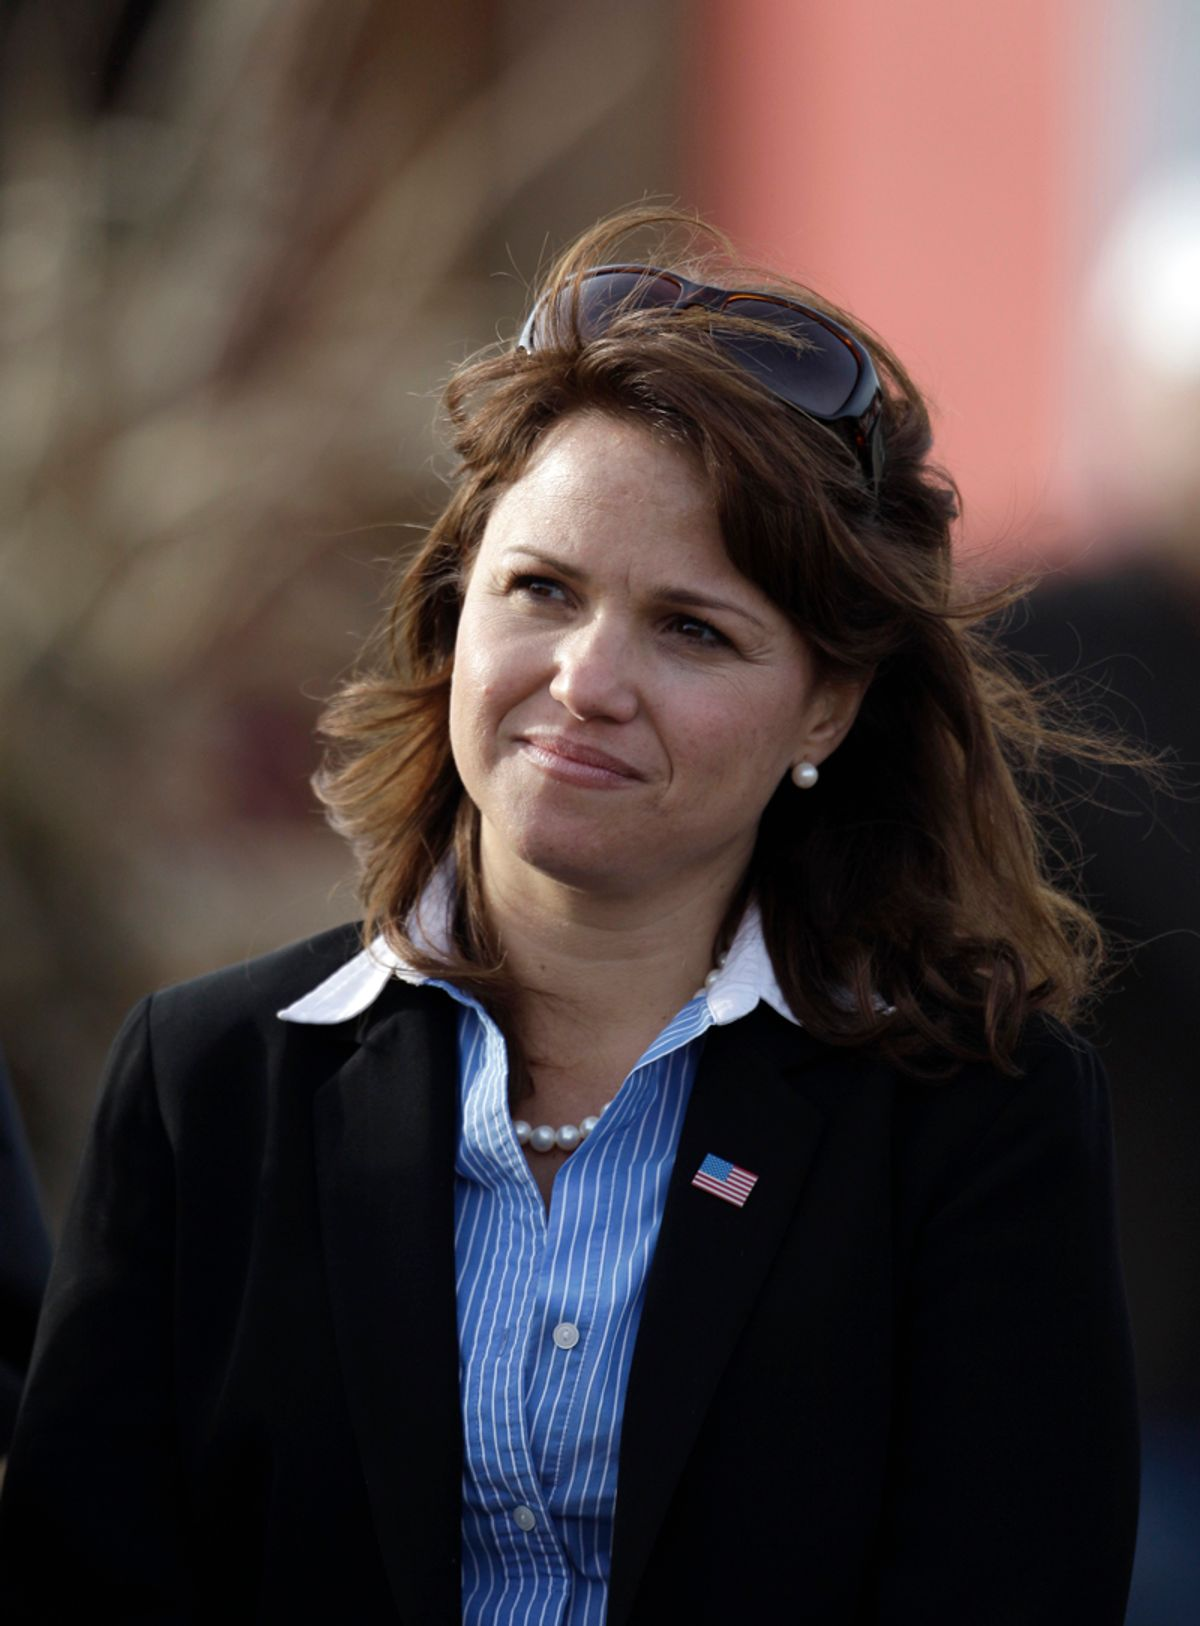 Delaware Republican Senate candidate Christine O'Donnell waits to speak during a campaign rally, Saturday Oct. 30, 2010, in Middletown, Del. (AP Photo/Rob Carr) (Rob Carr)